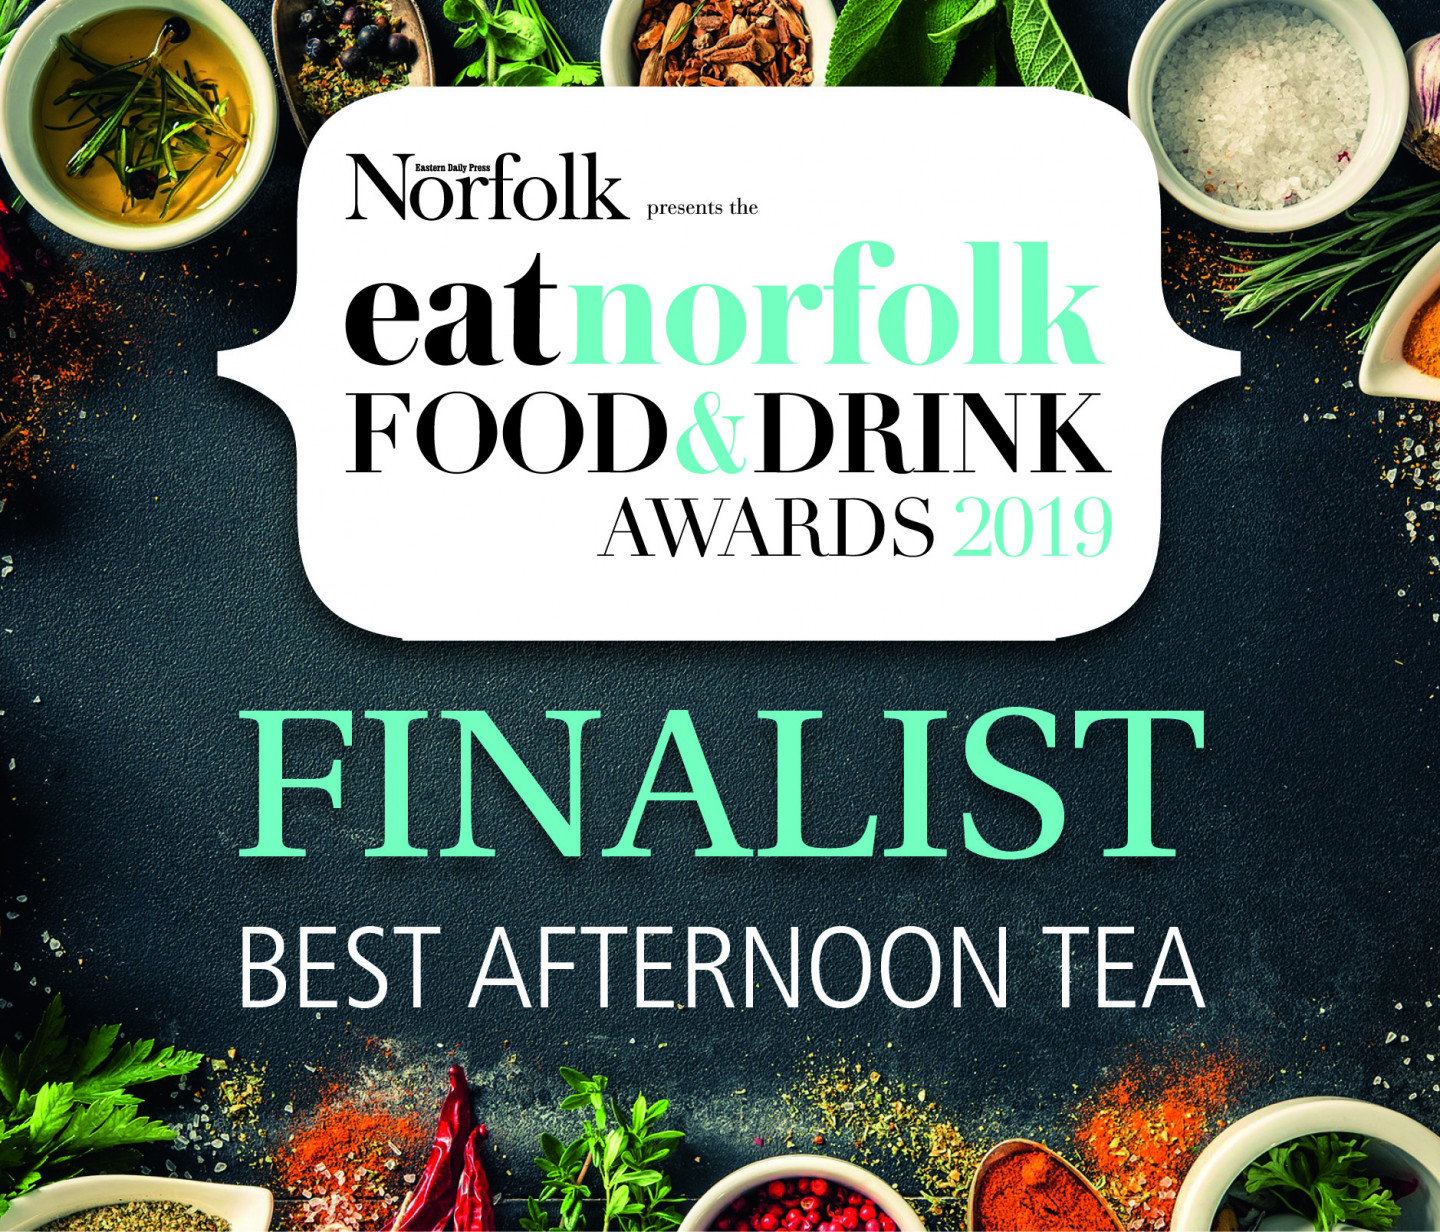 EAT Norfolk Food and Drink Awards Best Afternoon Tea Finalist